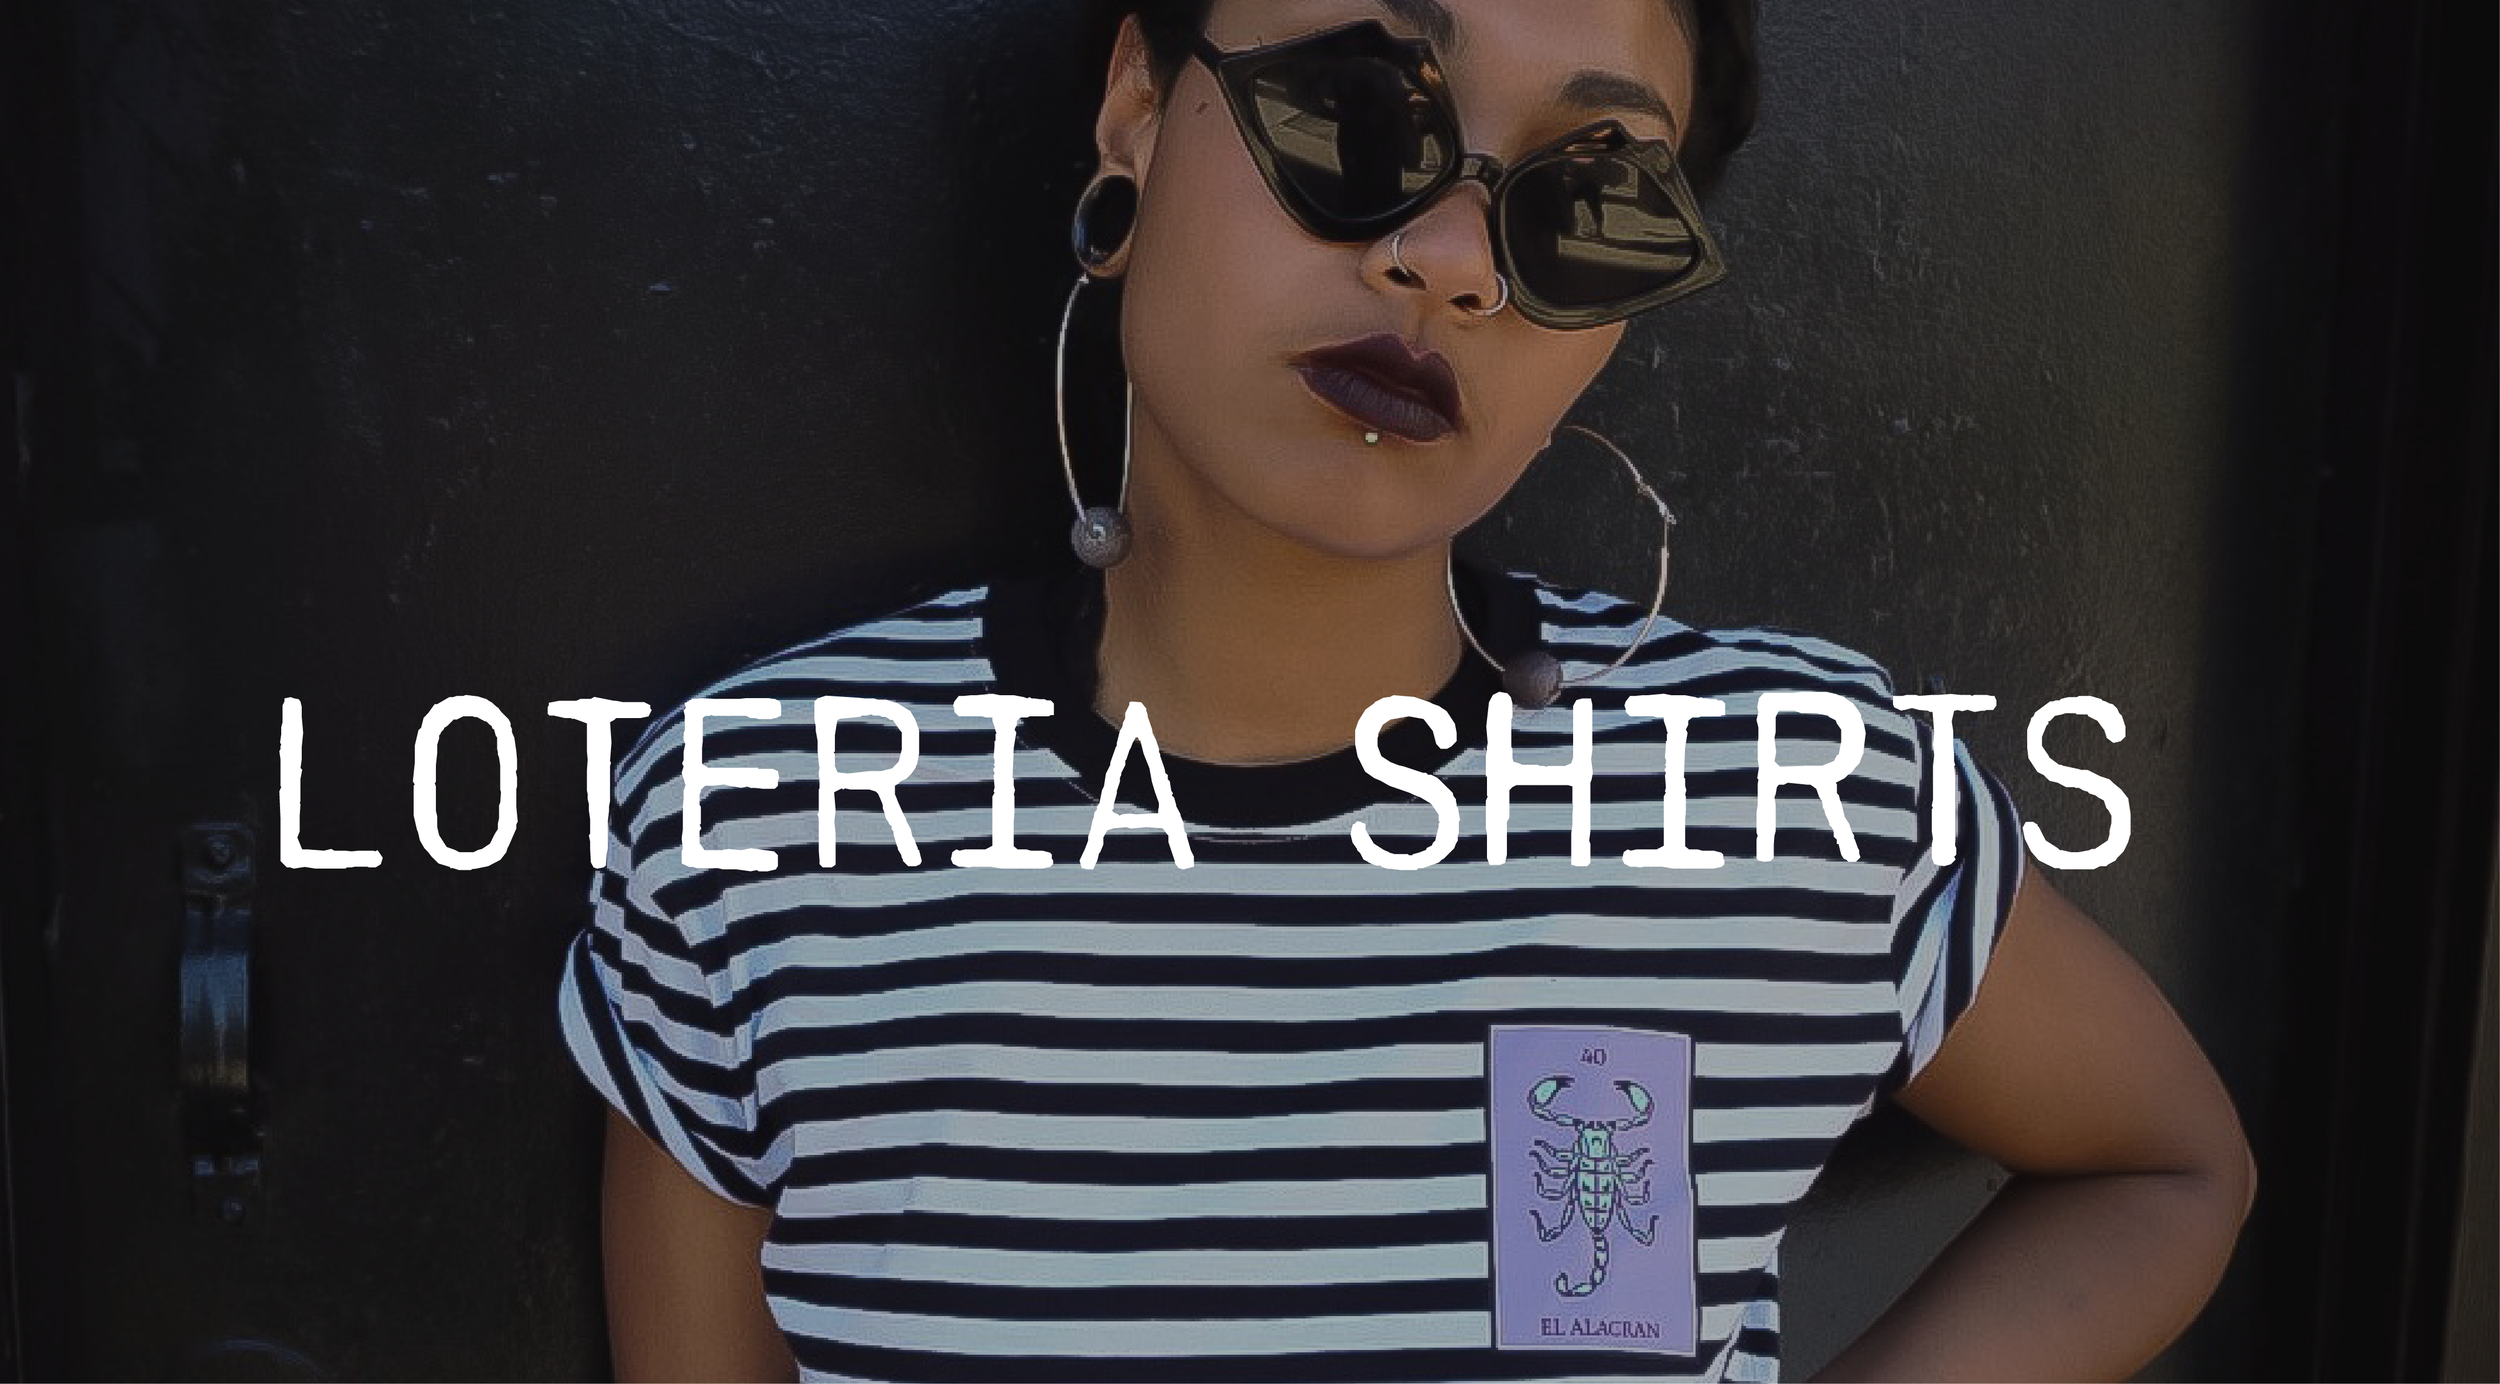 Shirts inspired by Loteria Cards Summer 2019